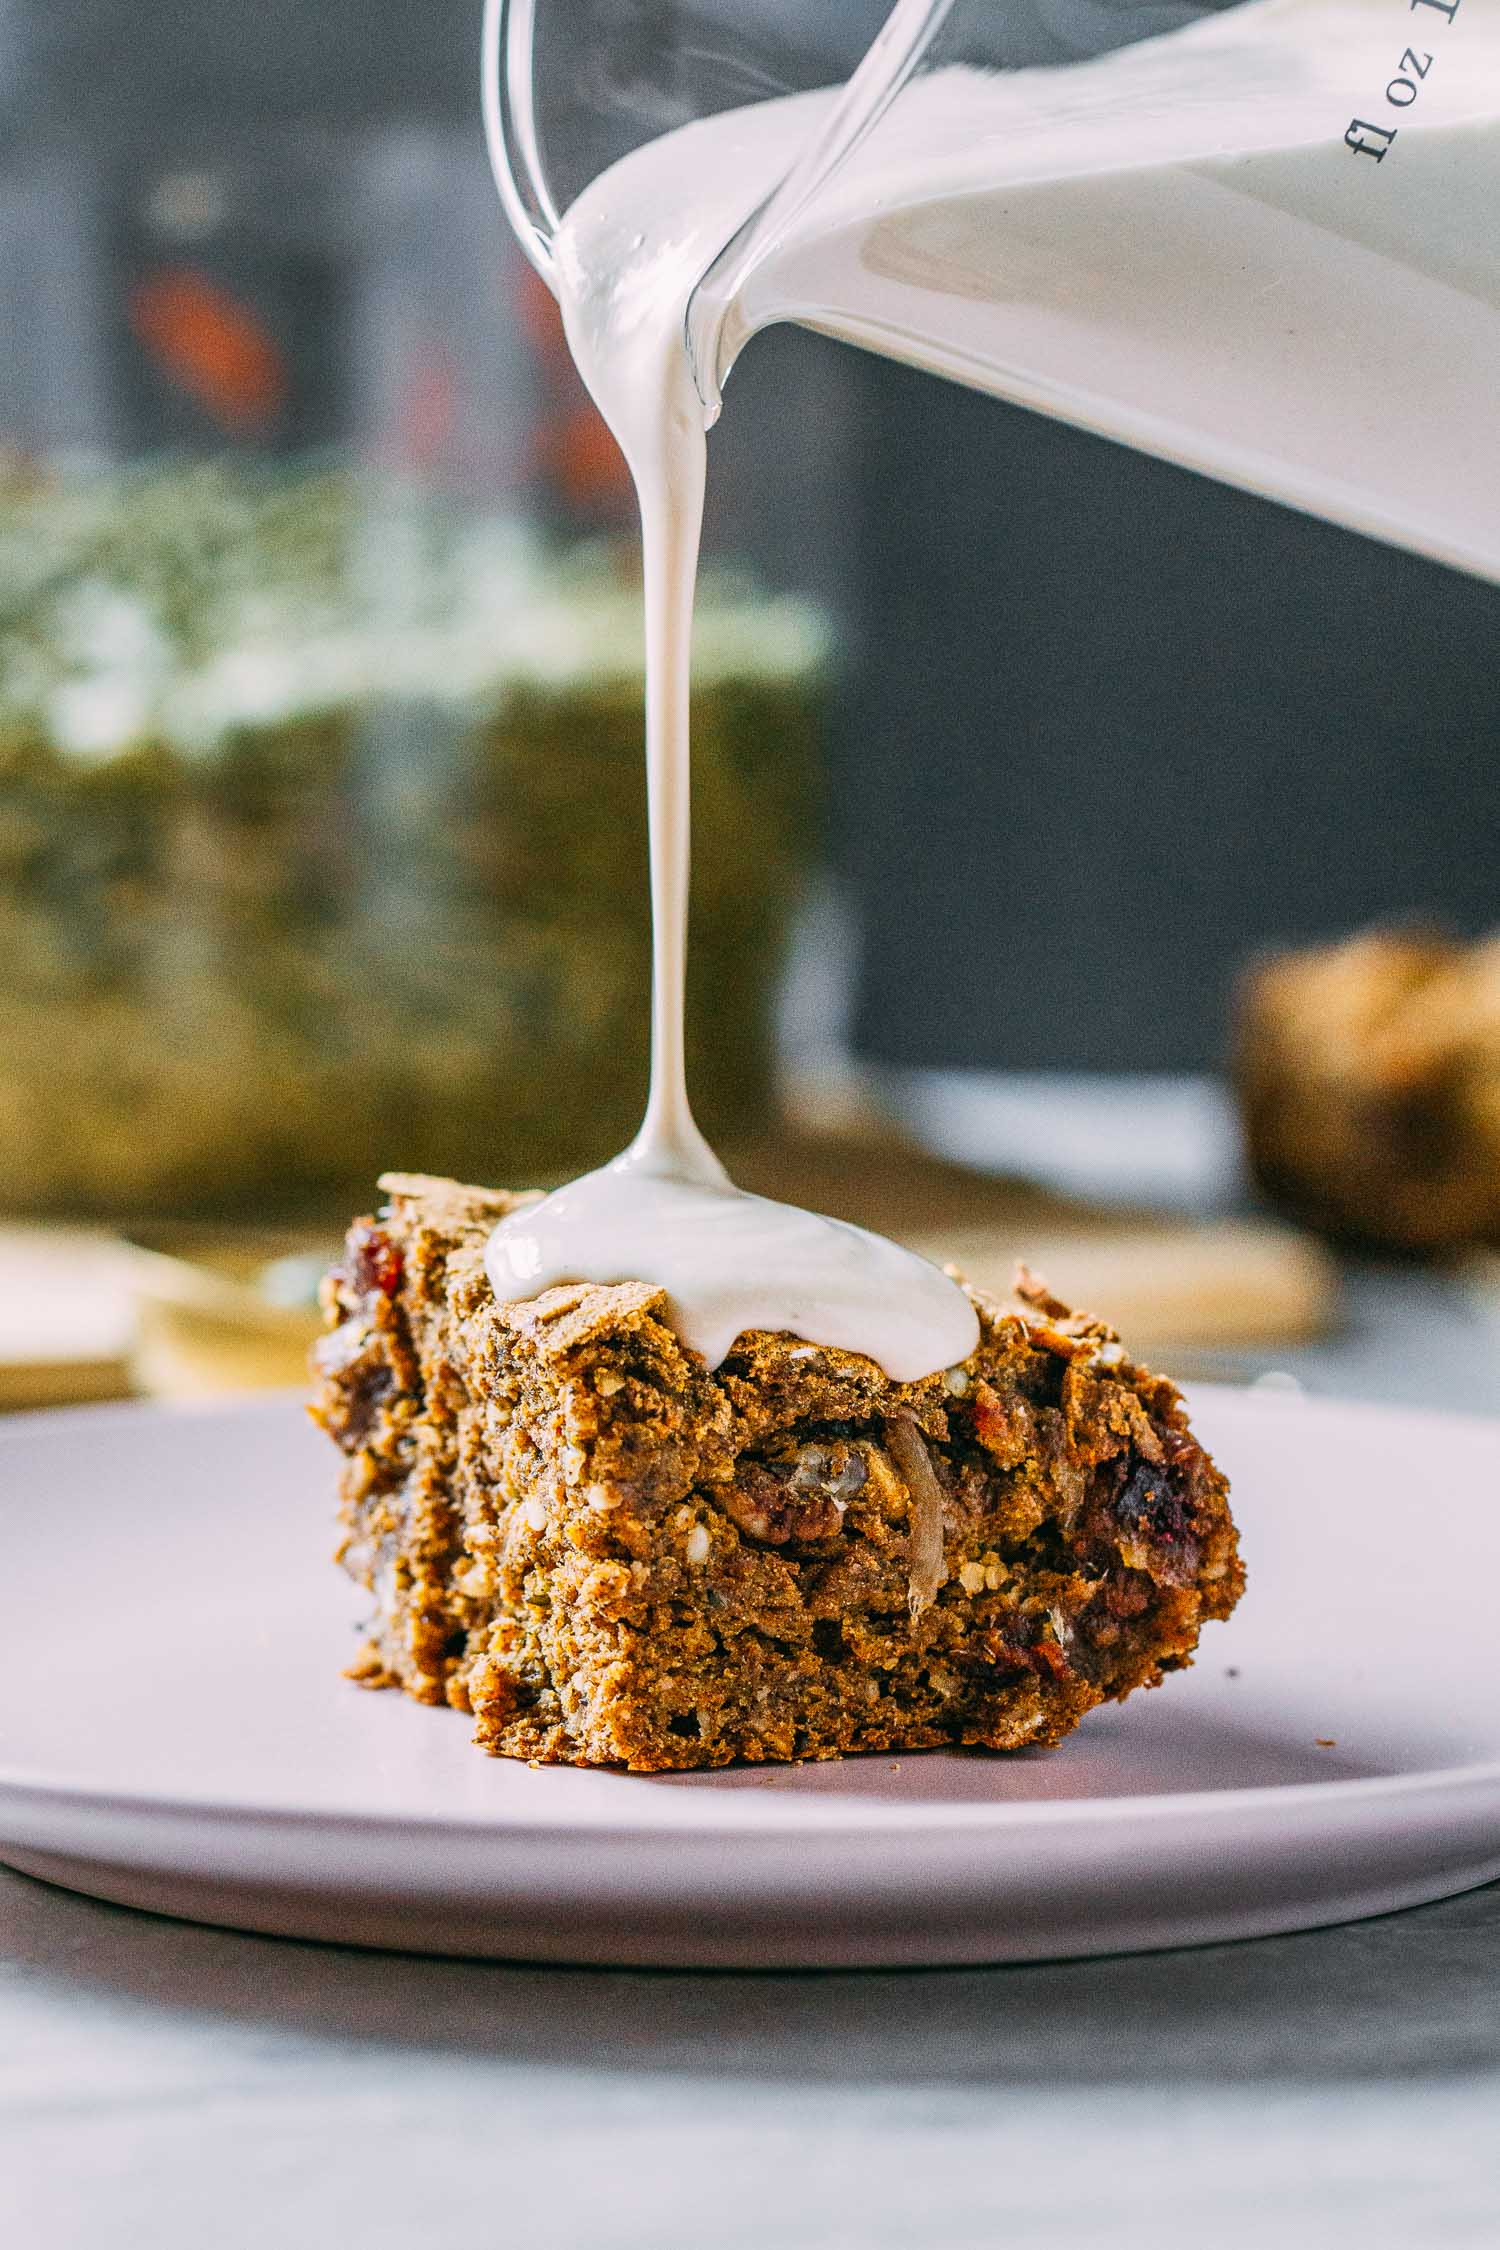 Pumpkin Cinnamon Spice Cake with Cashew Cream Cheese Glaze #pumpkin #cake #cinnamon #spice #cashew #cream #glaze #dairy-free #gluten-free #oil-free #refined sugar-free #plant-based #vegetarian #dessert #breakfast #fall #halloween #harvest #Thanksgiving #Christmas #holidays #recipe #easy #wfpb #recipes #wfpbno #pecans #seeds